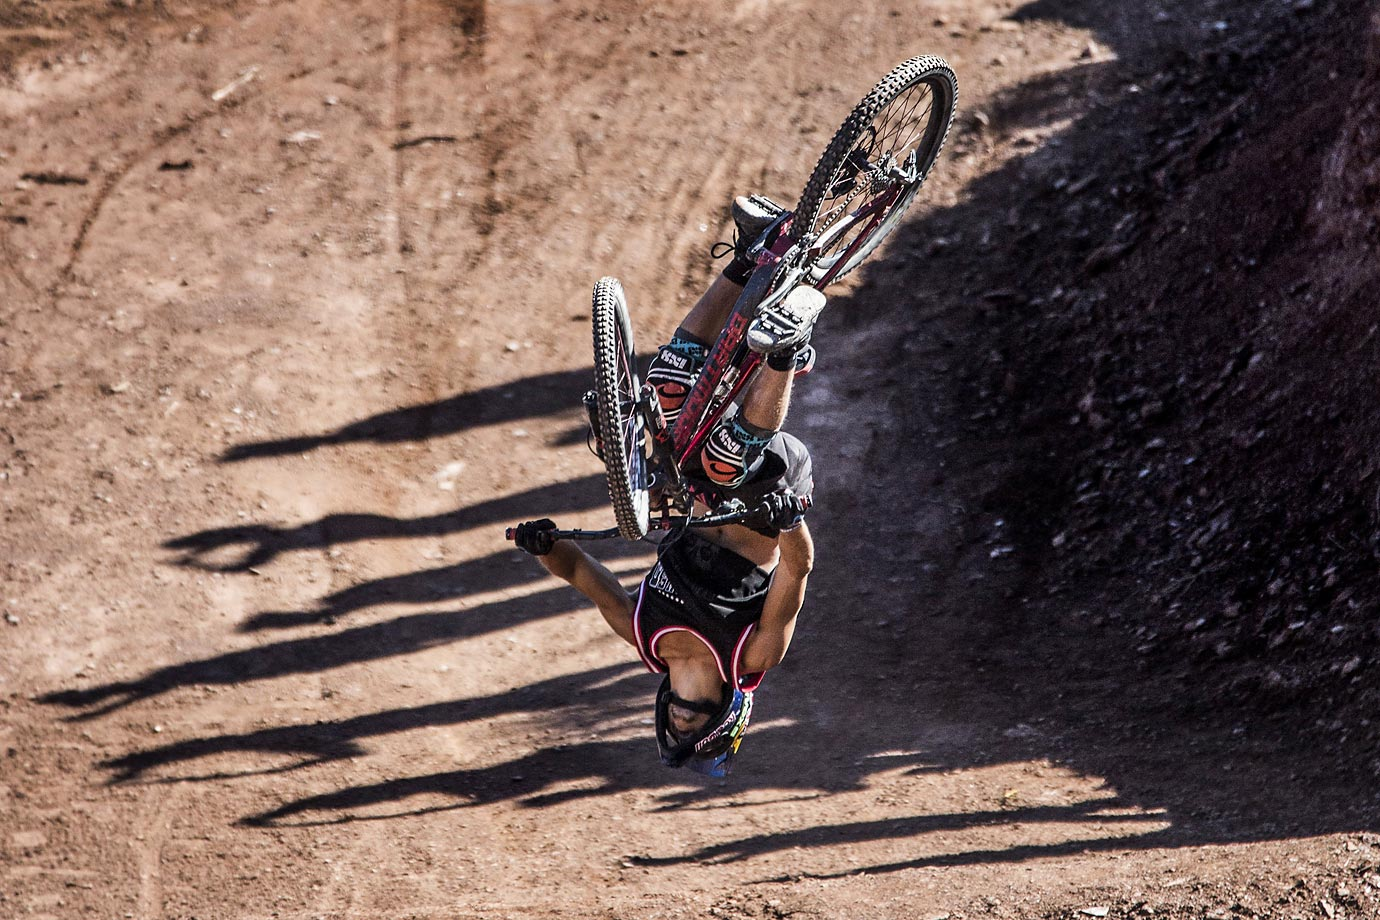 Szymon Godziek of Poland backflips the Canyon Gap in Virgin, Utah.